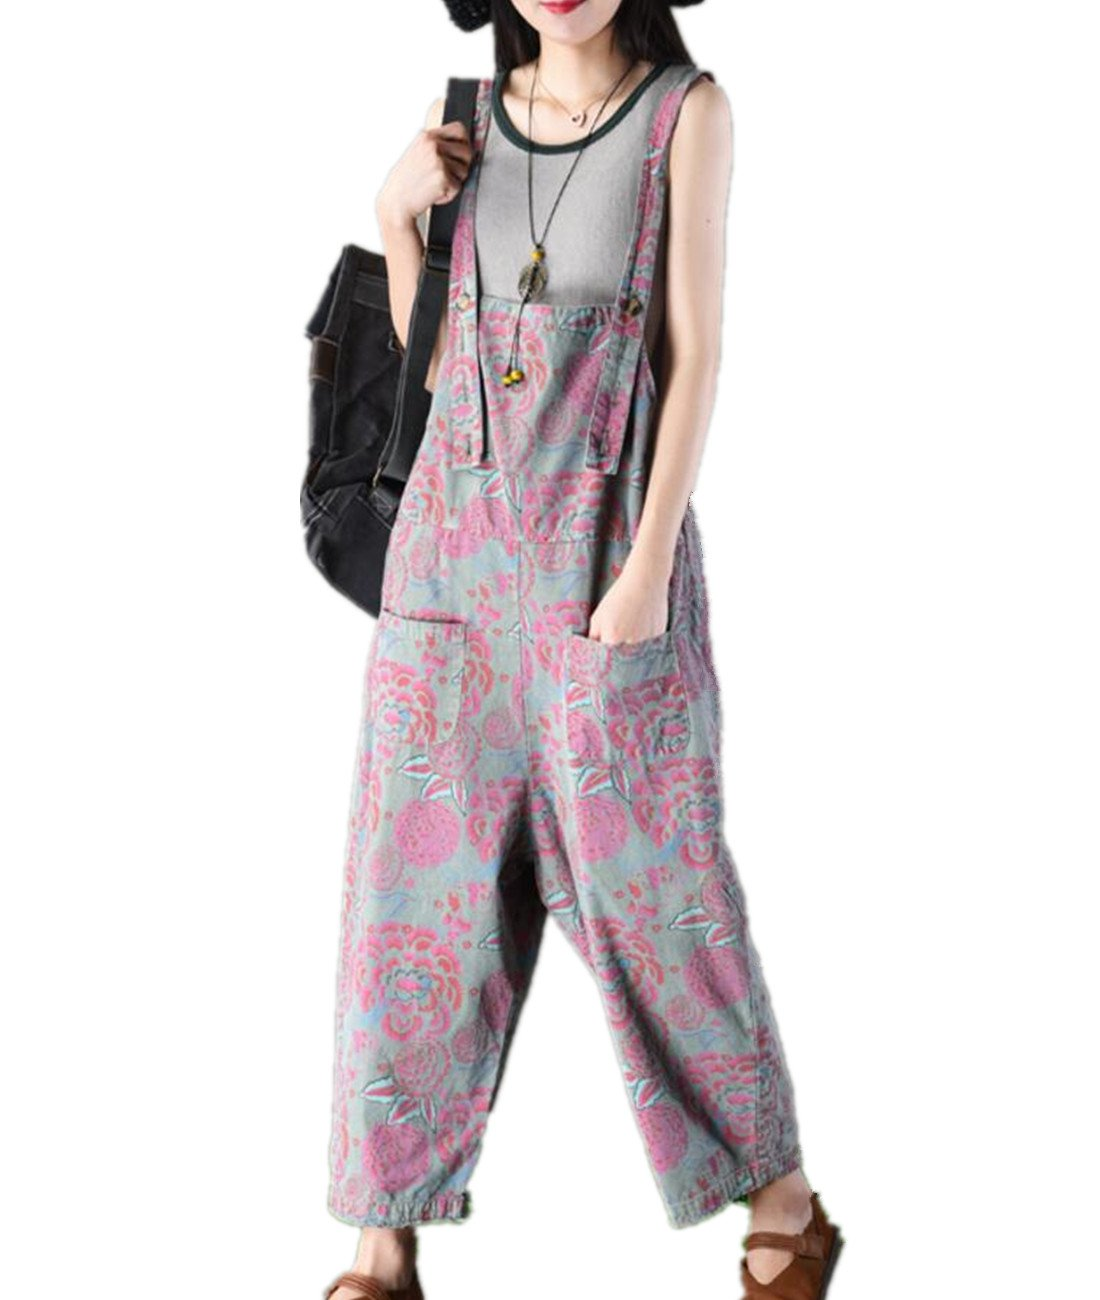 YESNO PQ7 Women Casual Loose Floral Overalls Rompers 100% Cotton Boyfriend Wide Leg Low Crotch Pocket